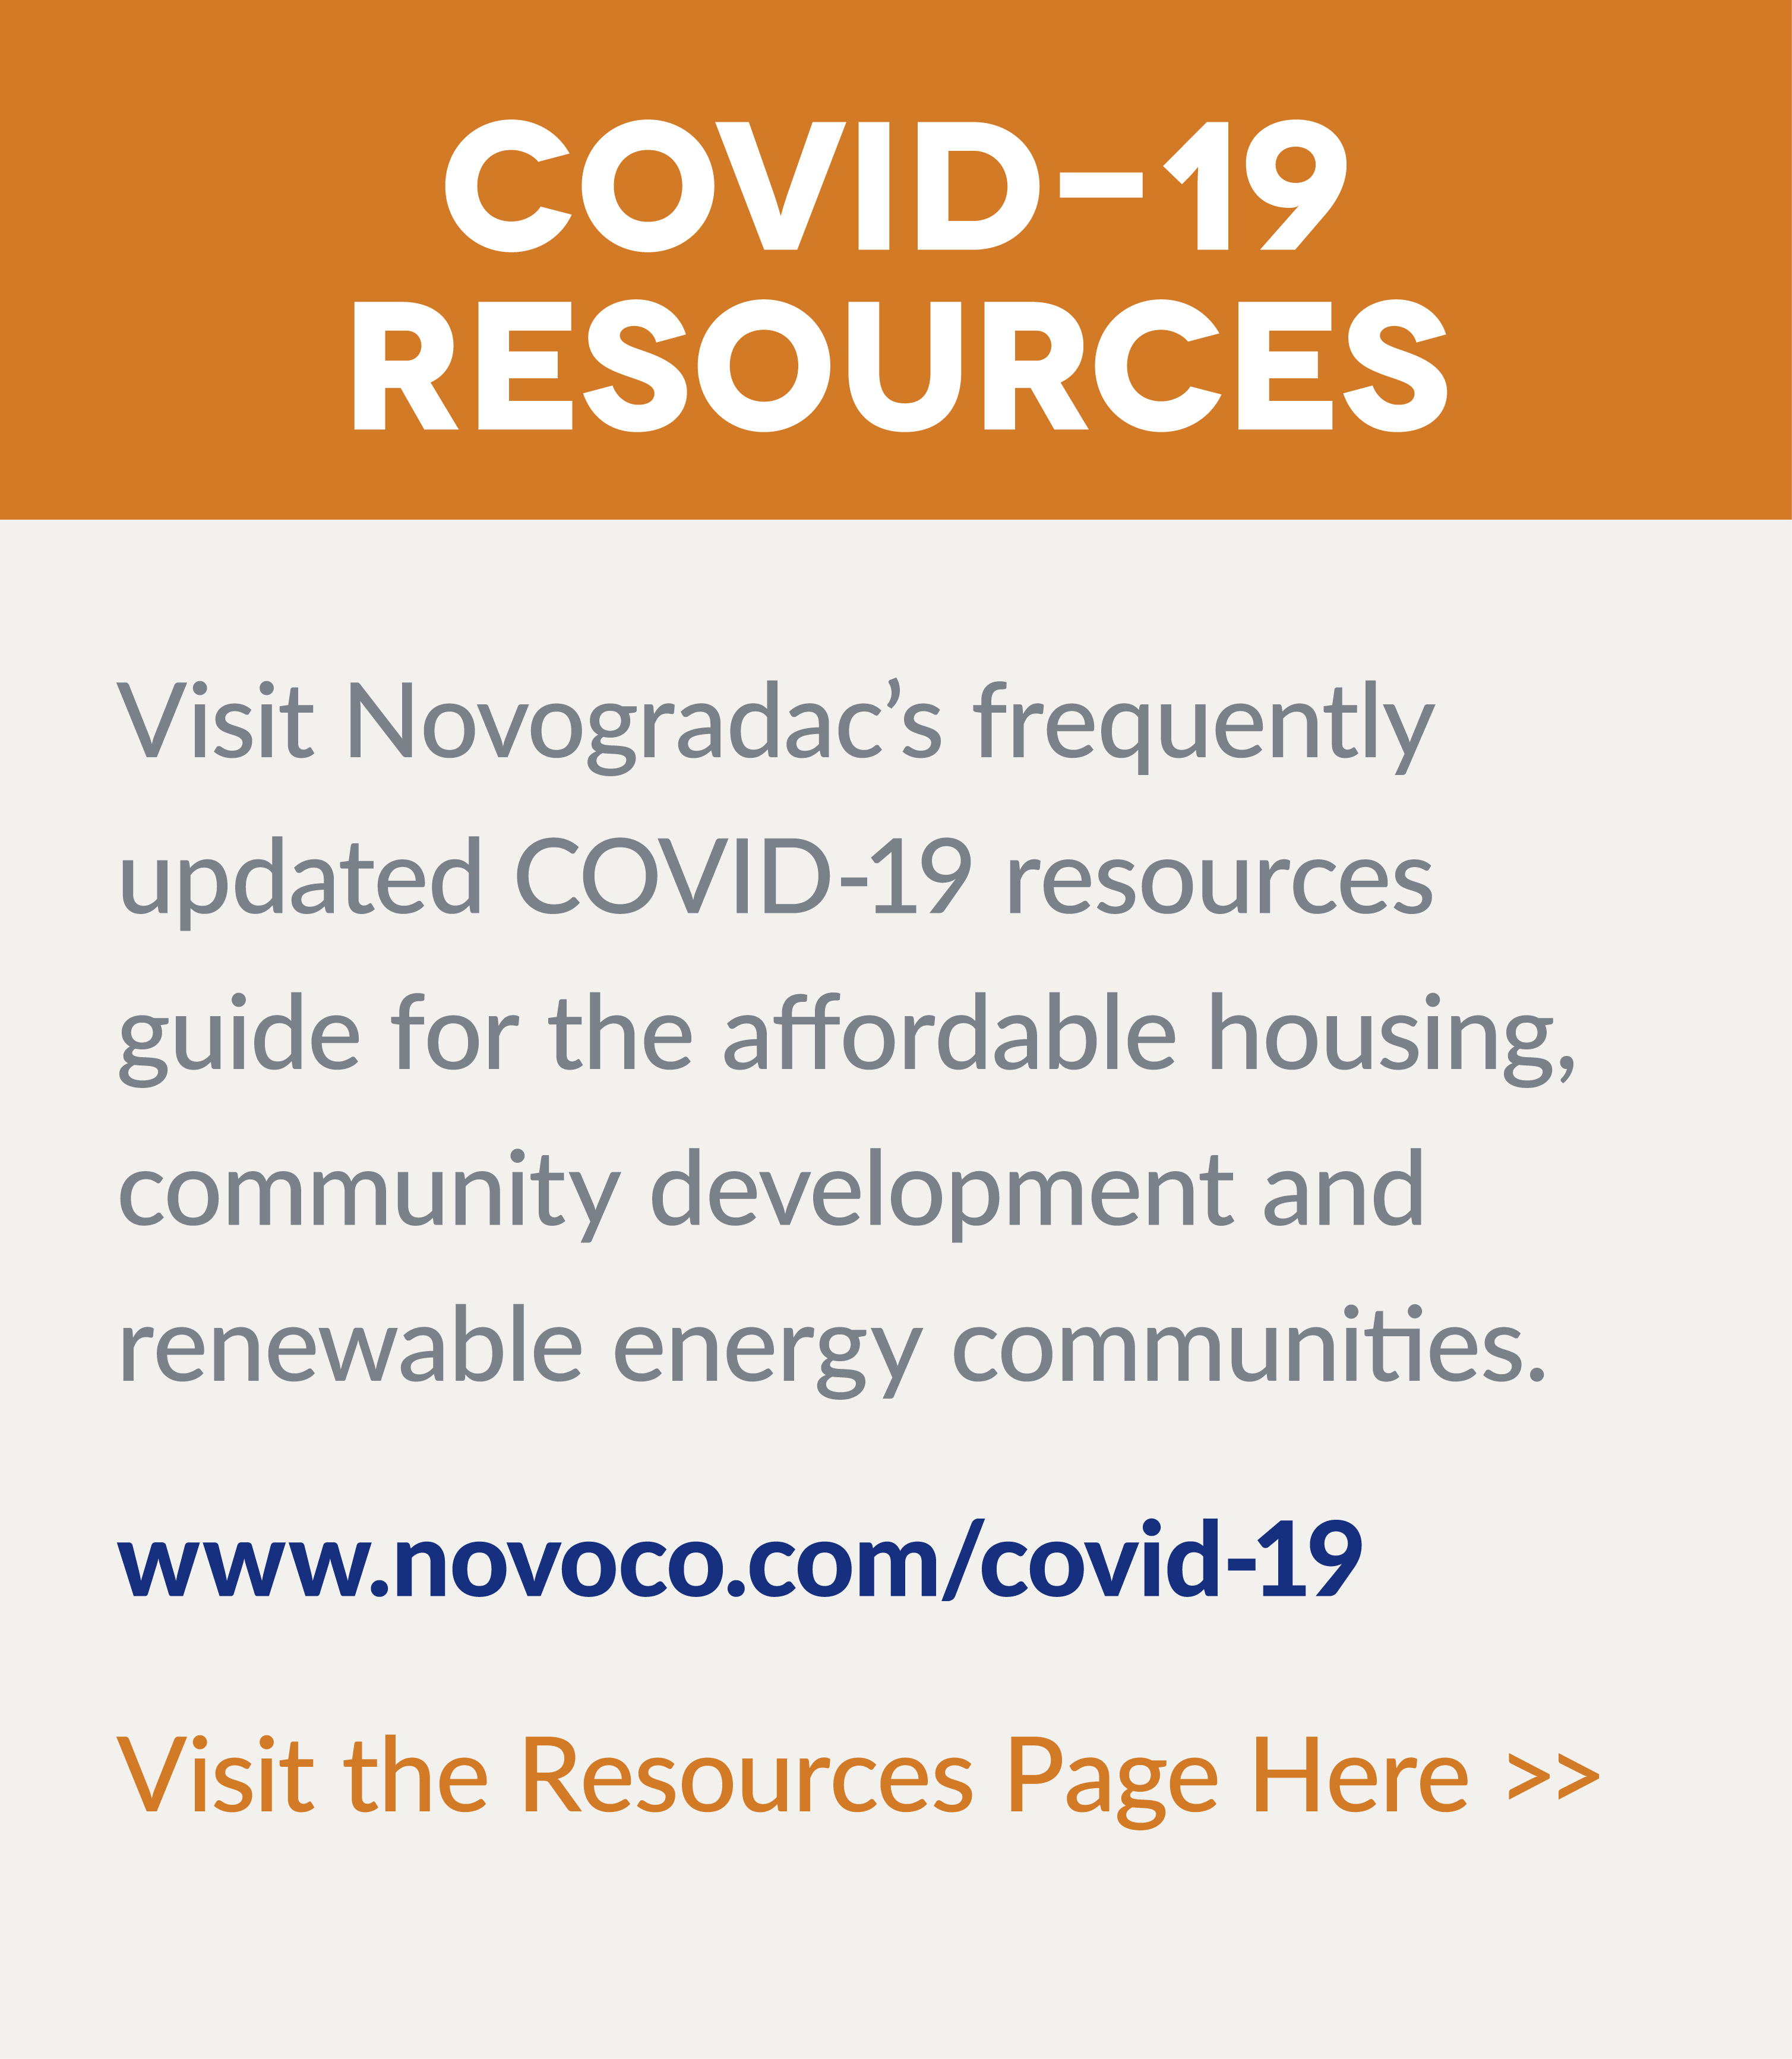 Novogradac's Response to the COVID-19 Pandemic